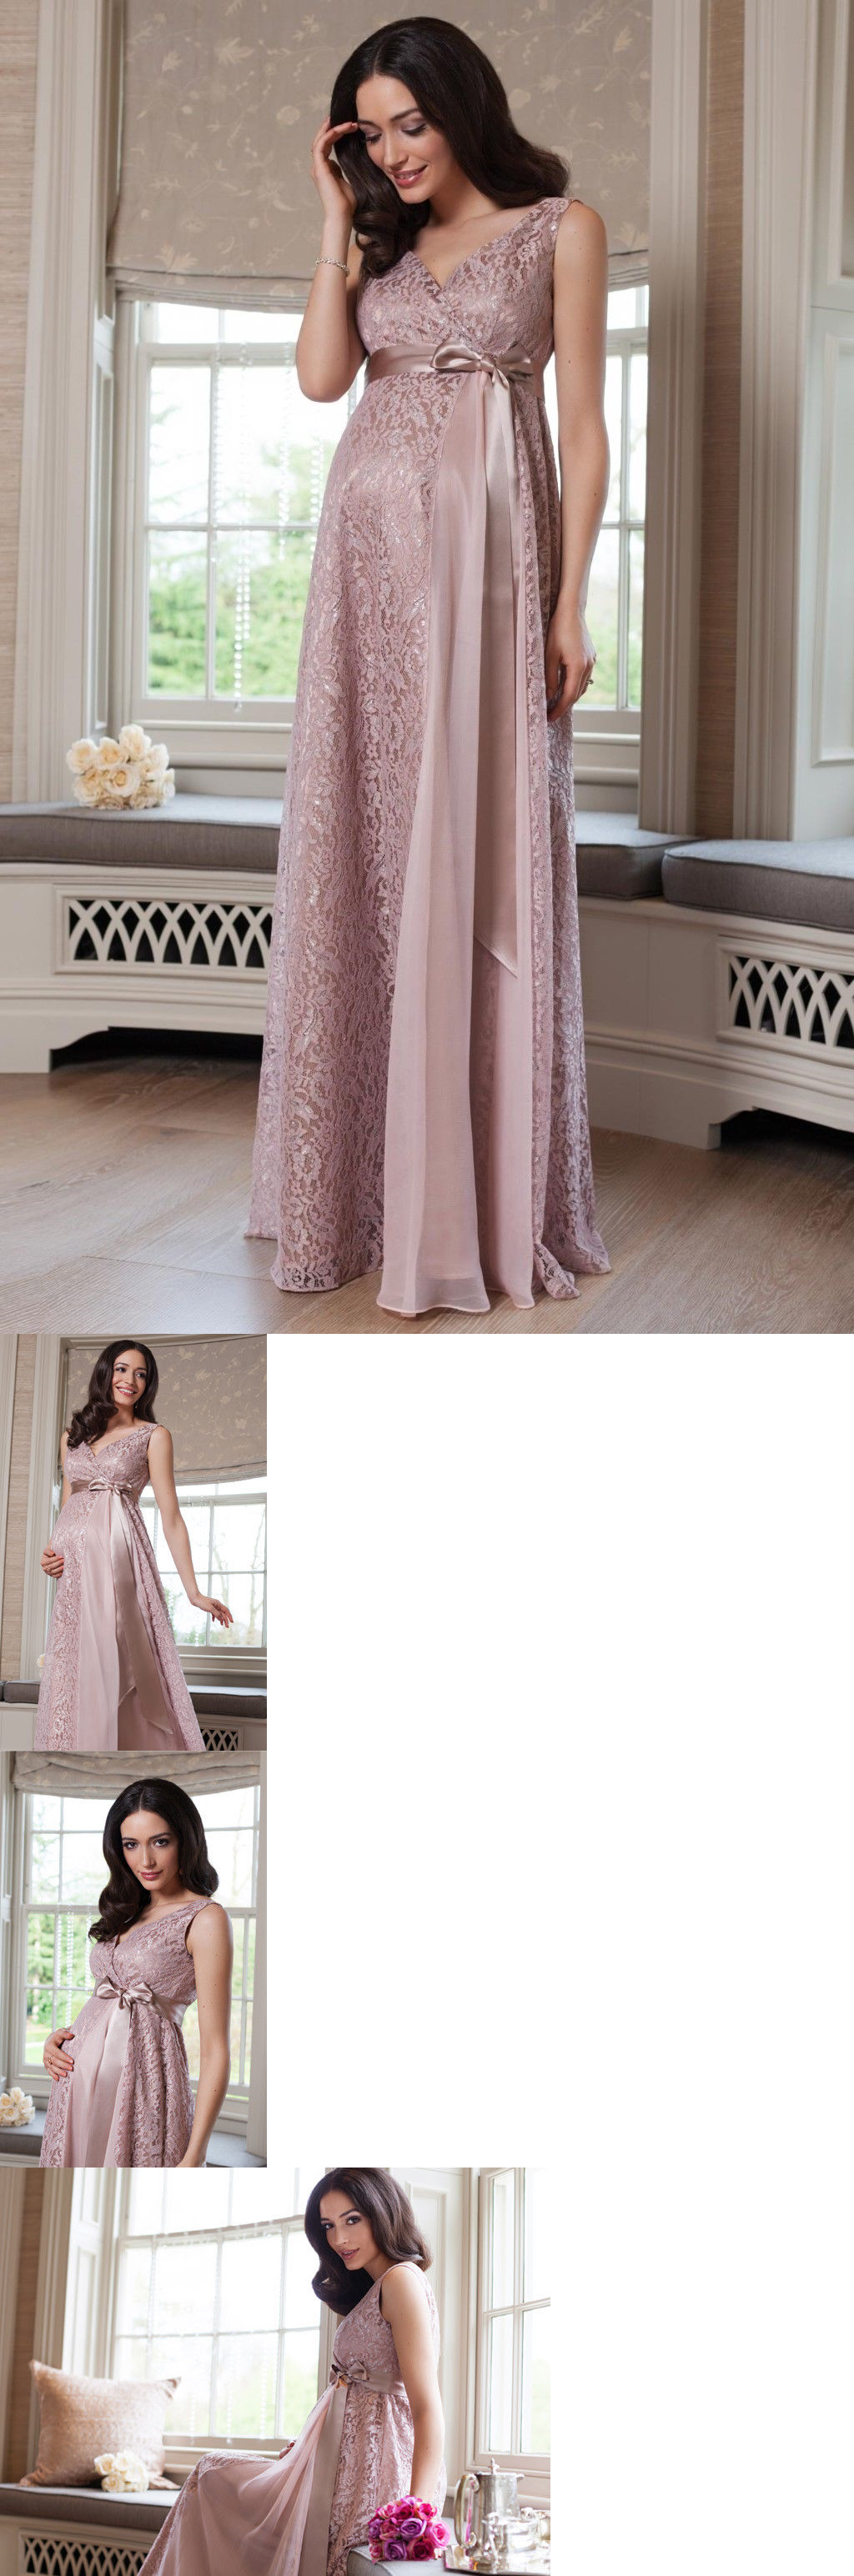 Dresses 11534 tiffany rose maternity dress gown blush thea dresses 11534 tiffany rose maternity dress gown blush thea size s m ombrellifo Images